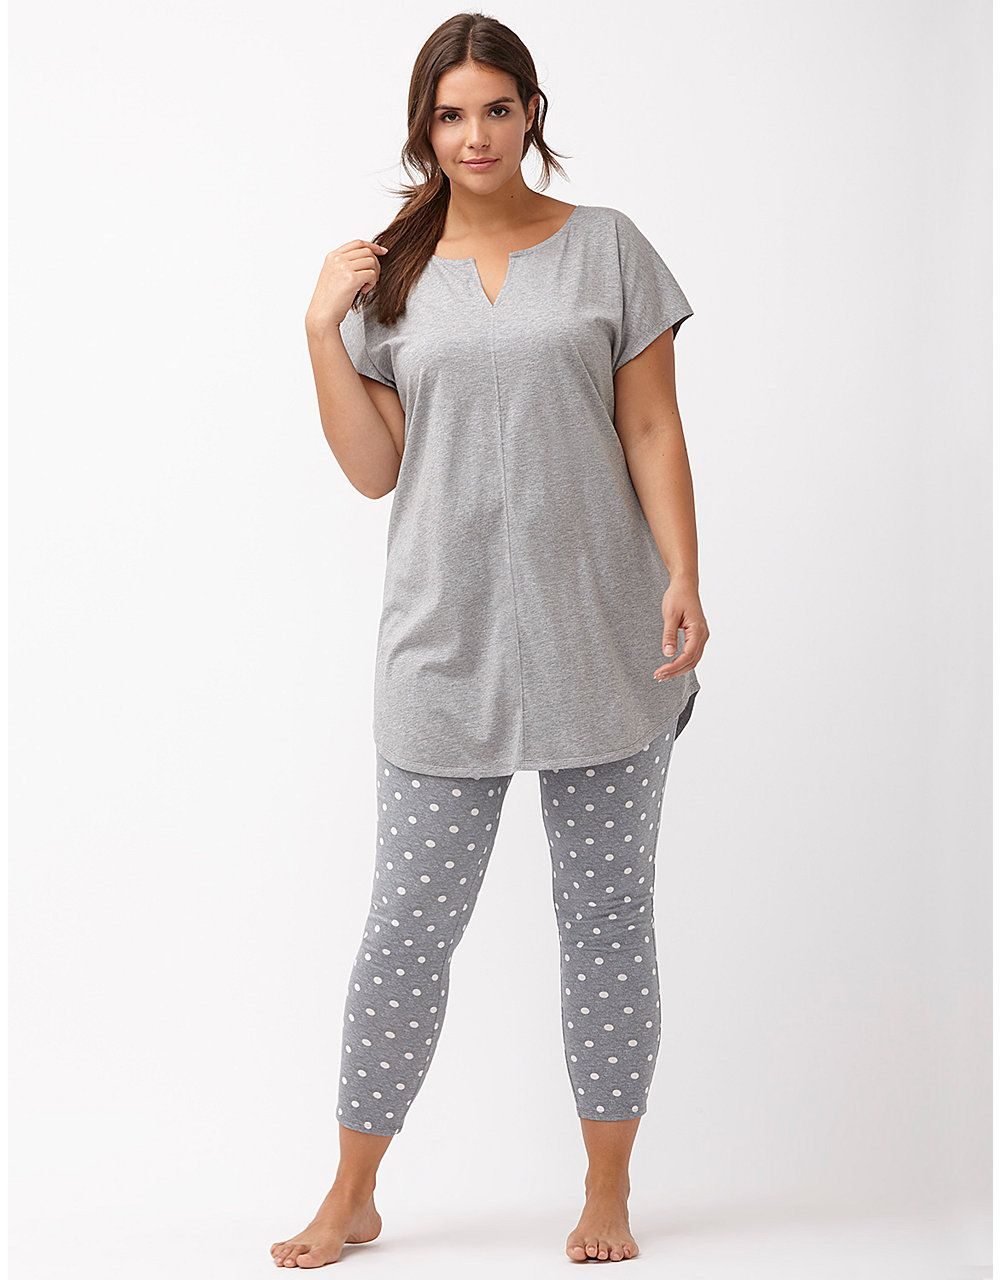 Find women's sleepwear and pajama sets in a variety of fabrics & styles from cotton sleep shirts to satin chemises, & more. Shop great deals now! featured sleepwear & robes categories. Pajamas. Robes. Slippers. Bras & Panties. Added to your bag. Your shopping basket is empty. Women's Sleepwear & Pajama Sets.